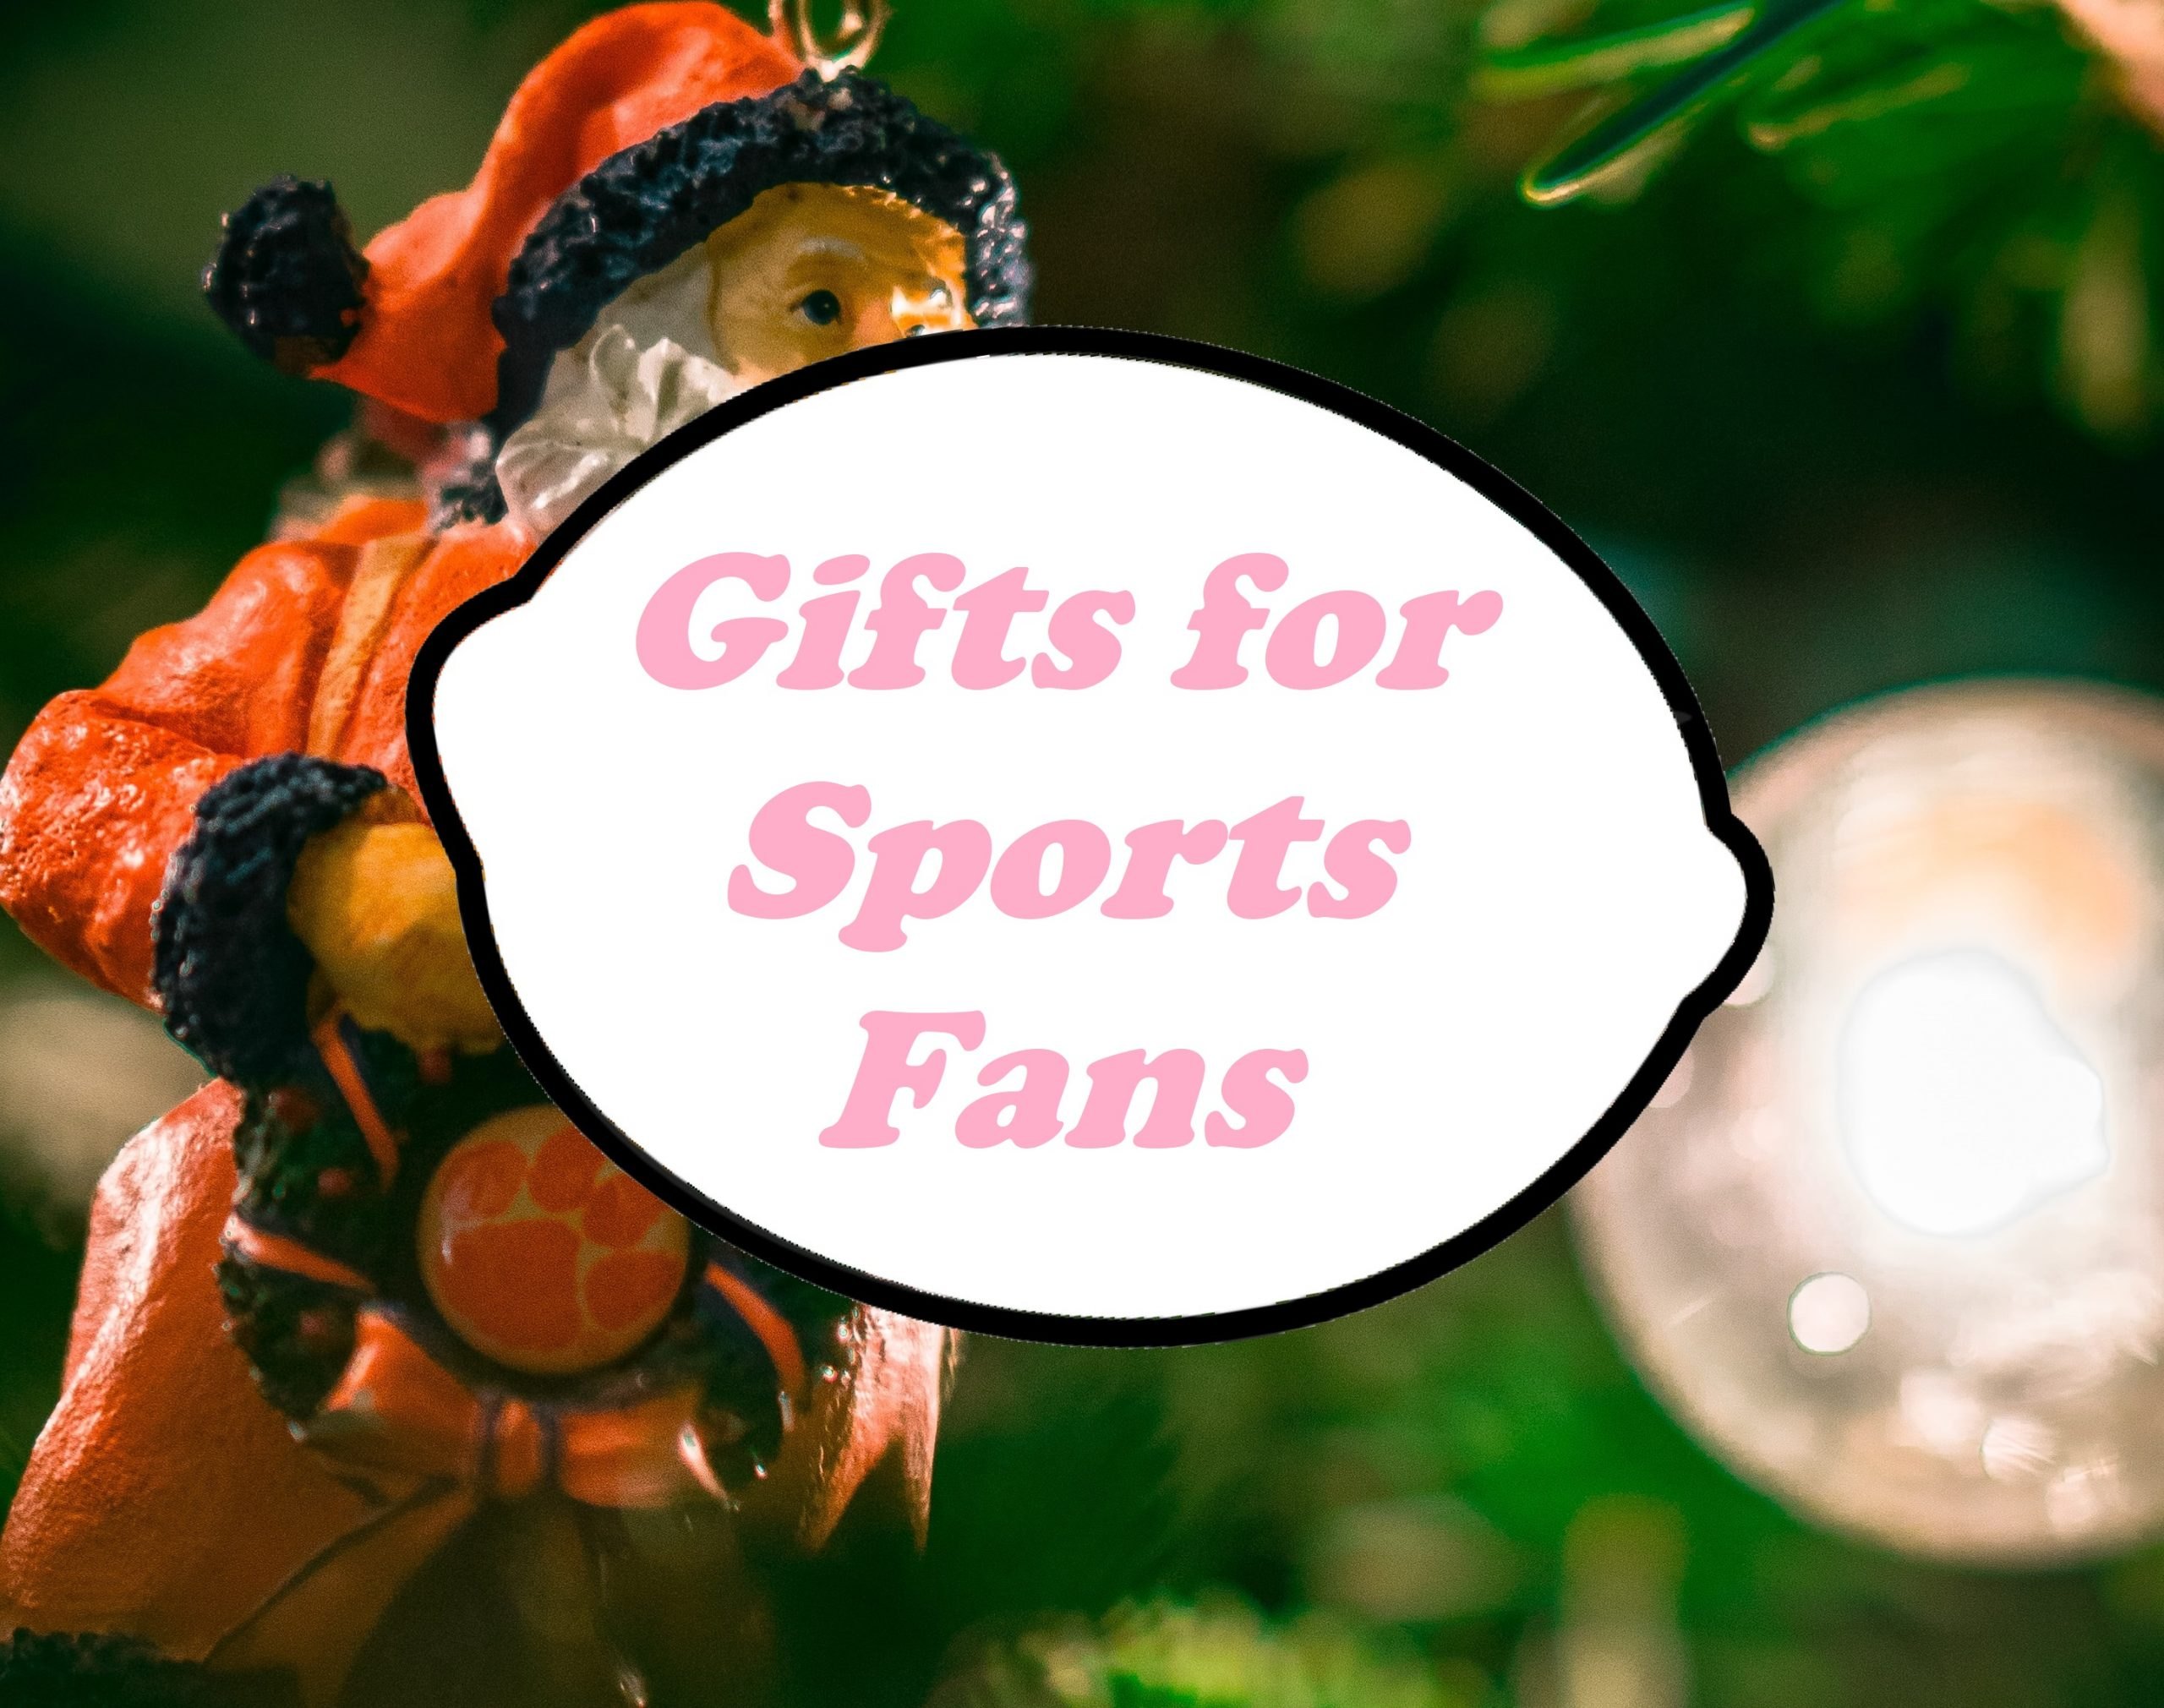 Last Minute Christmas Gifts for Sports Fans